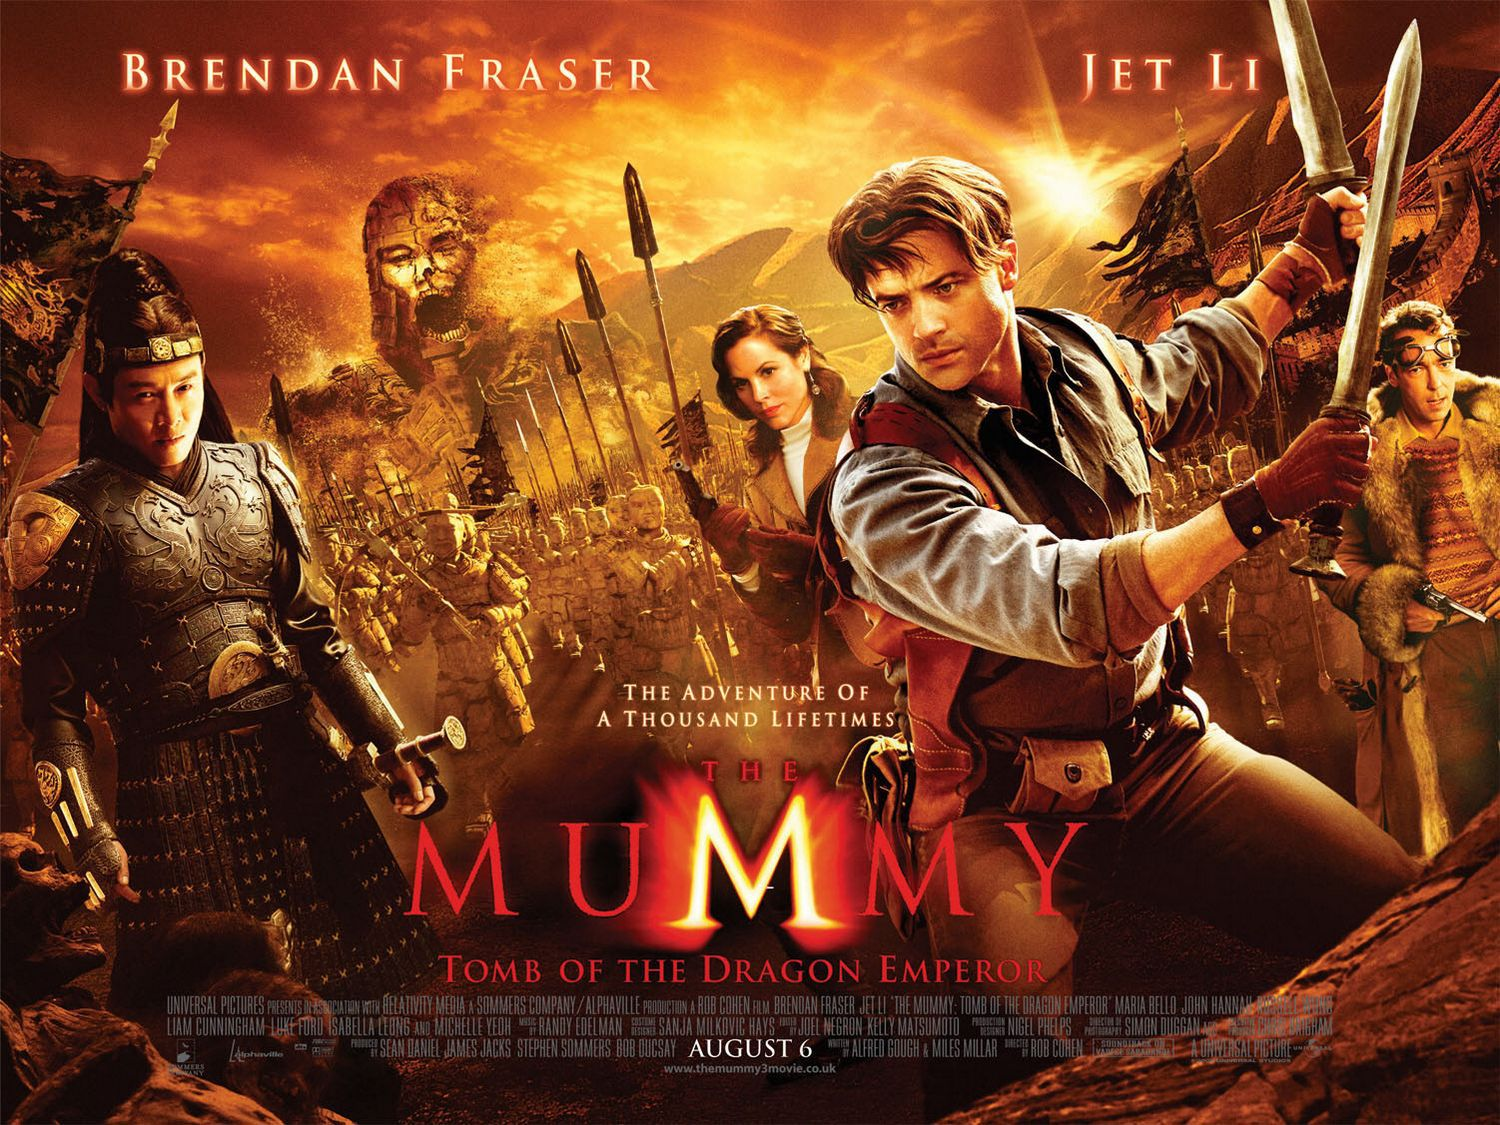 Mummy Tomb of the Dragon Emperor (2008)